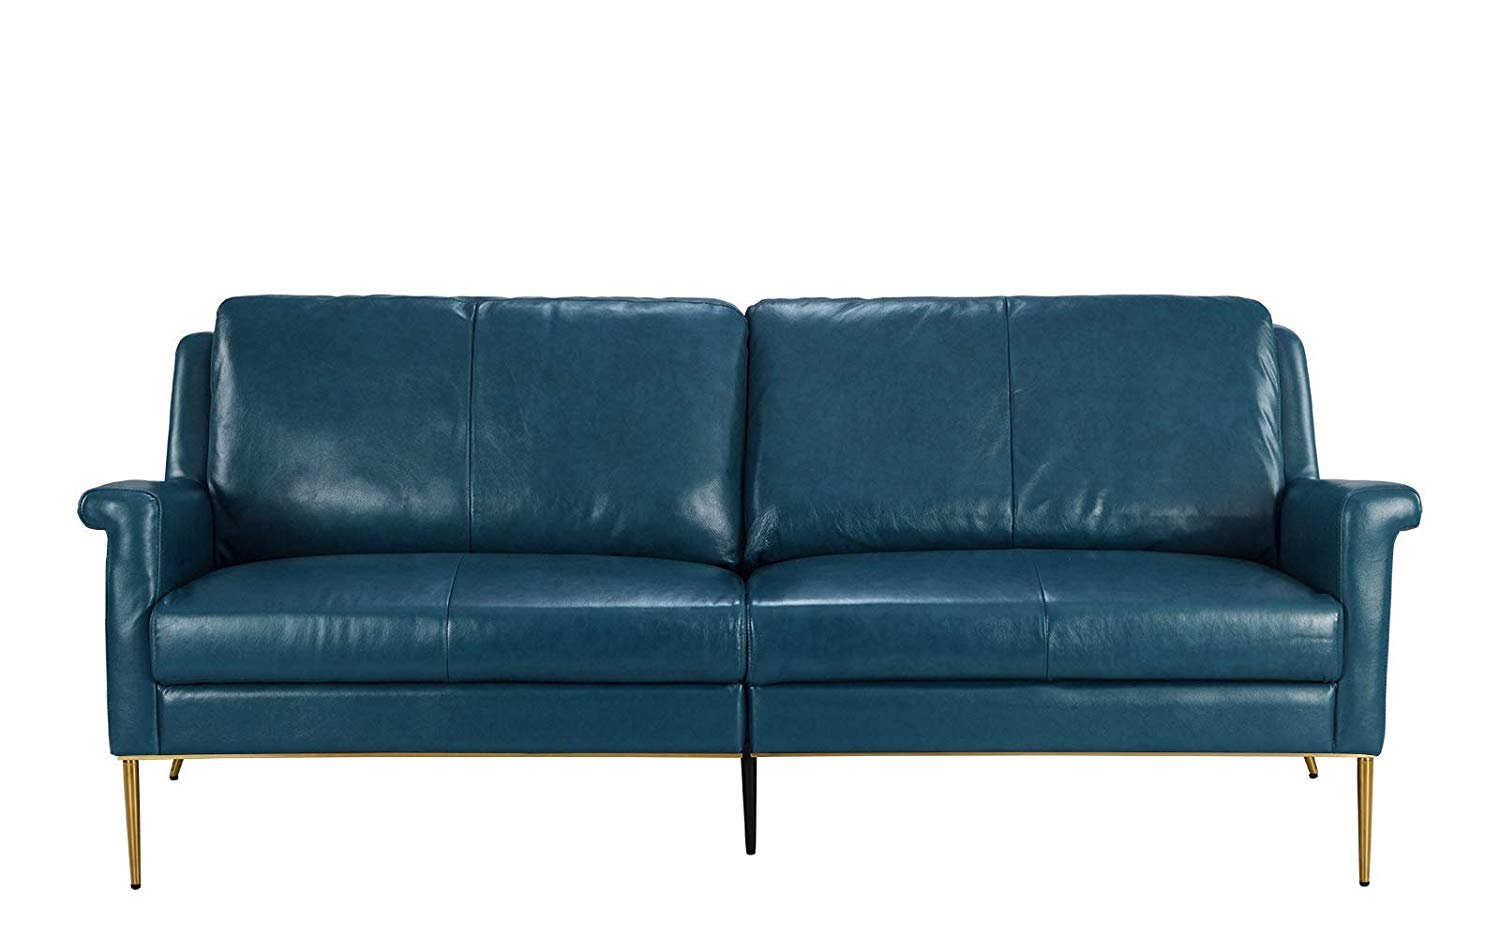 Details about Mid-Century Leather Sofa, Living Room Couch in Leather Match  Fabric (Blue)